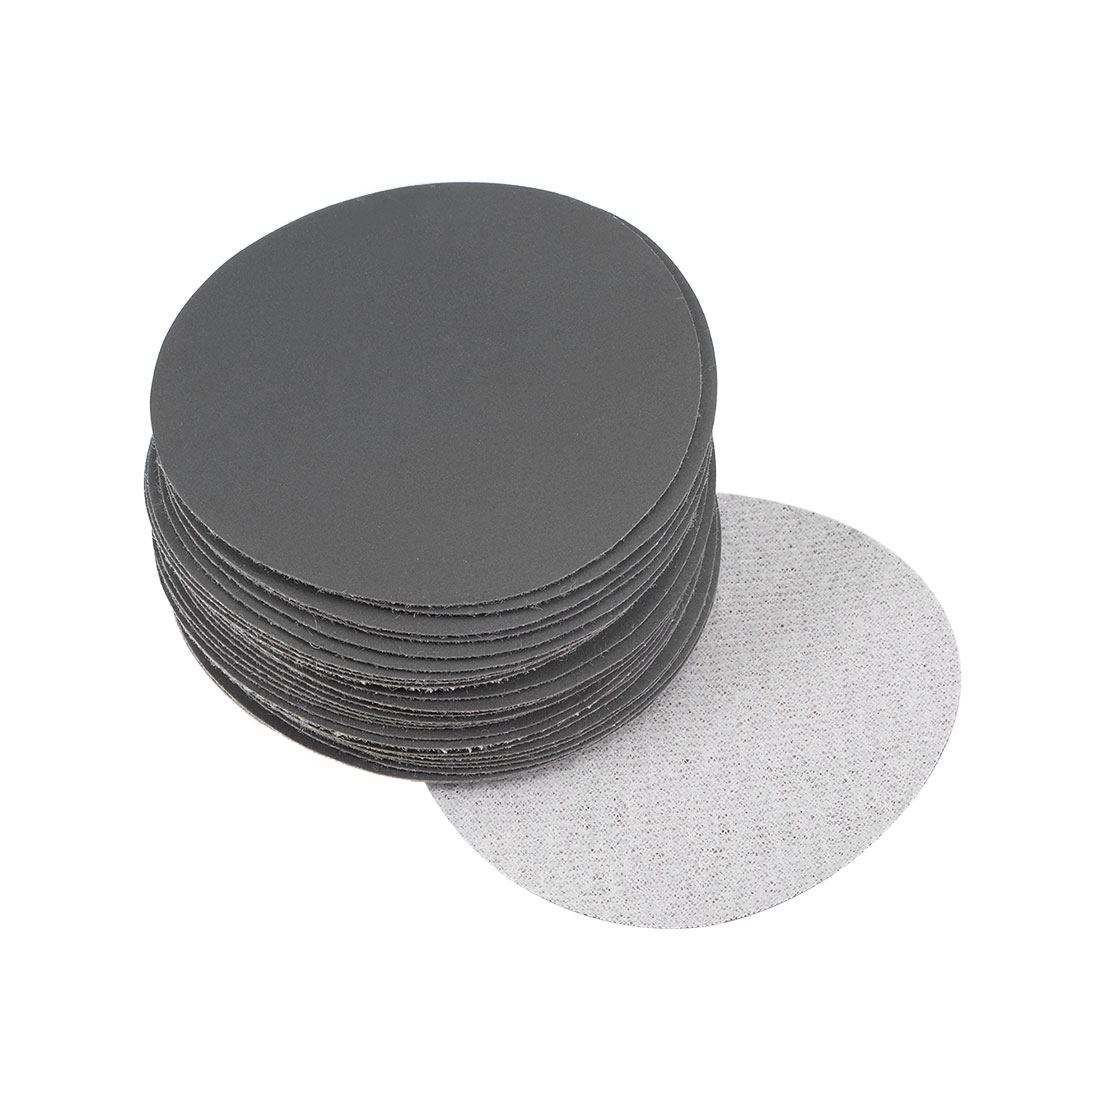 3 inch Wet Dry Discs 1200 Grit Hook and Loop Sanding Disc Silicon Carbide 30pcs